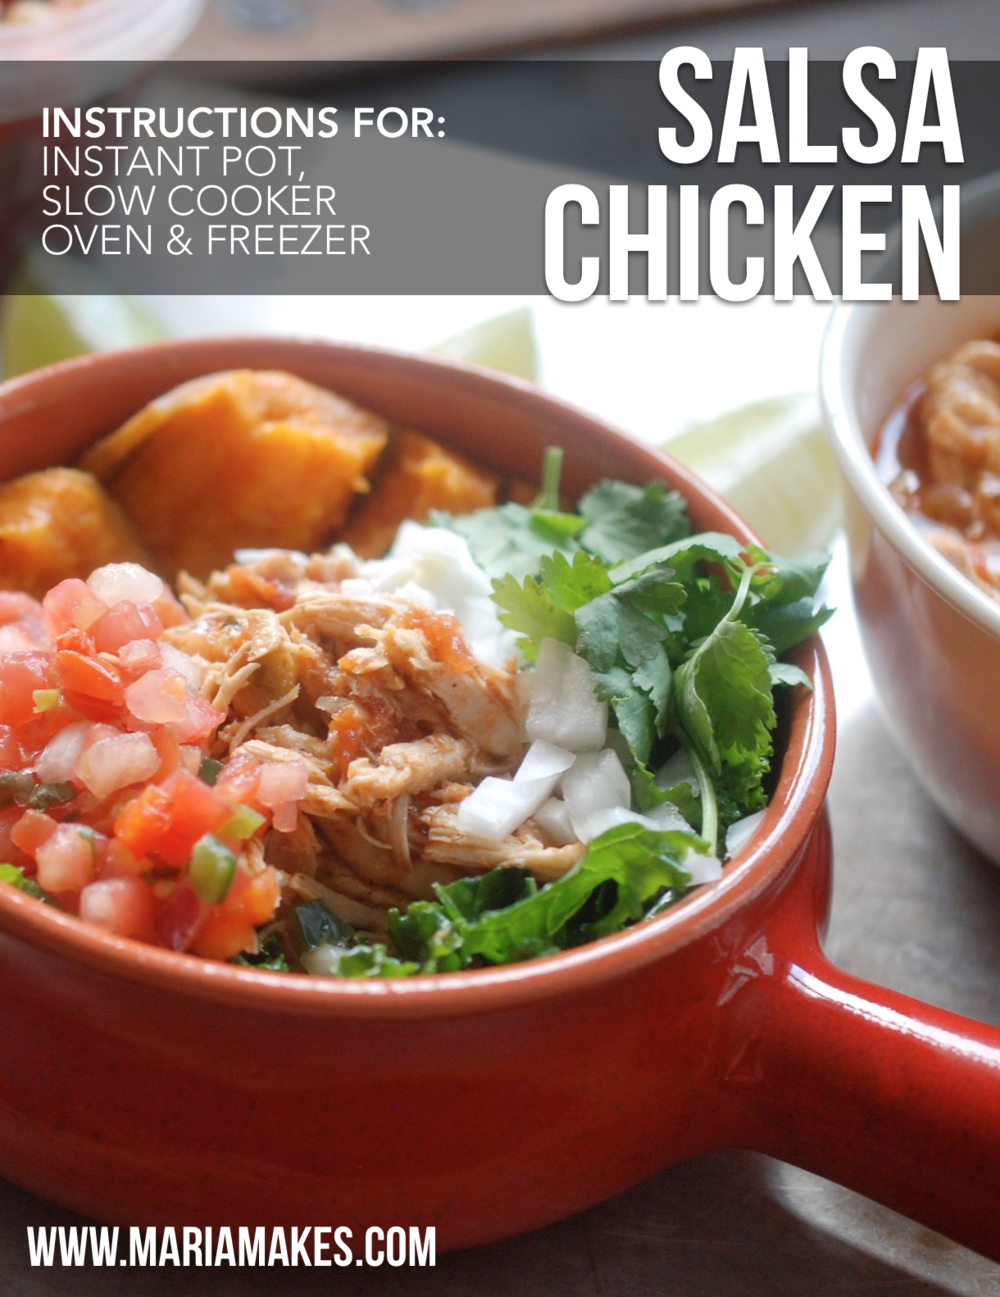 Salsa Chicken – Maria Makes: With instructions for Instant Pot, Slow Cooker, Oven, and Freezer Cooking! #Whole30 and #Paleo